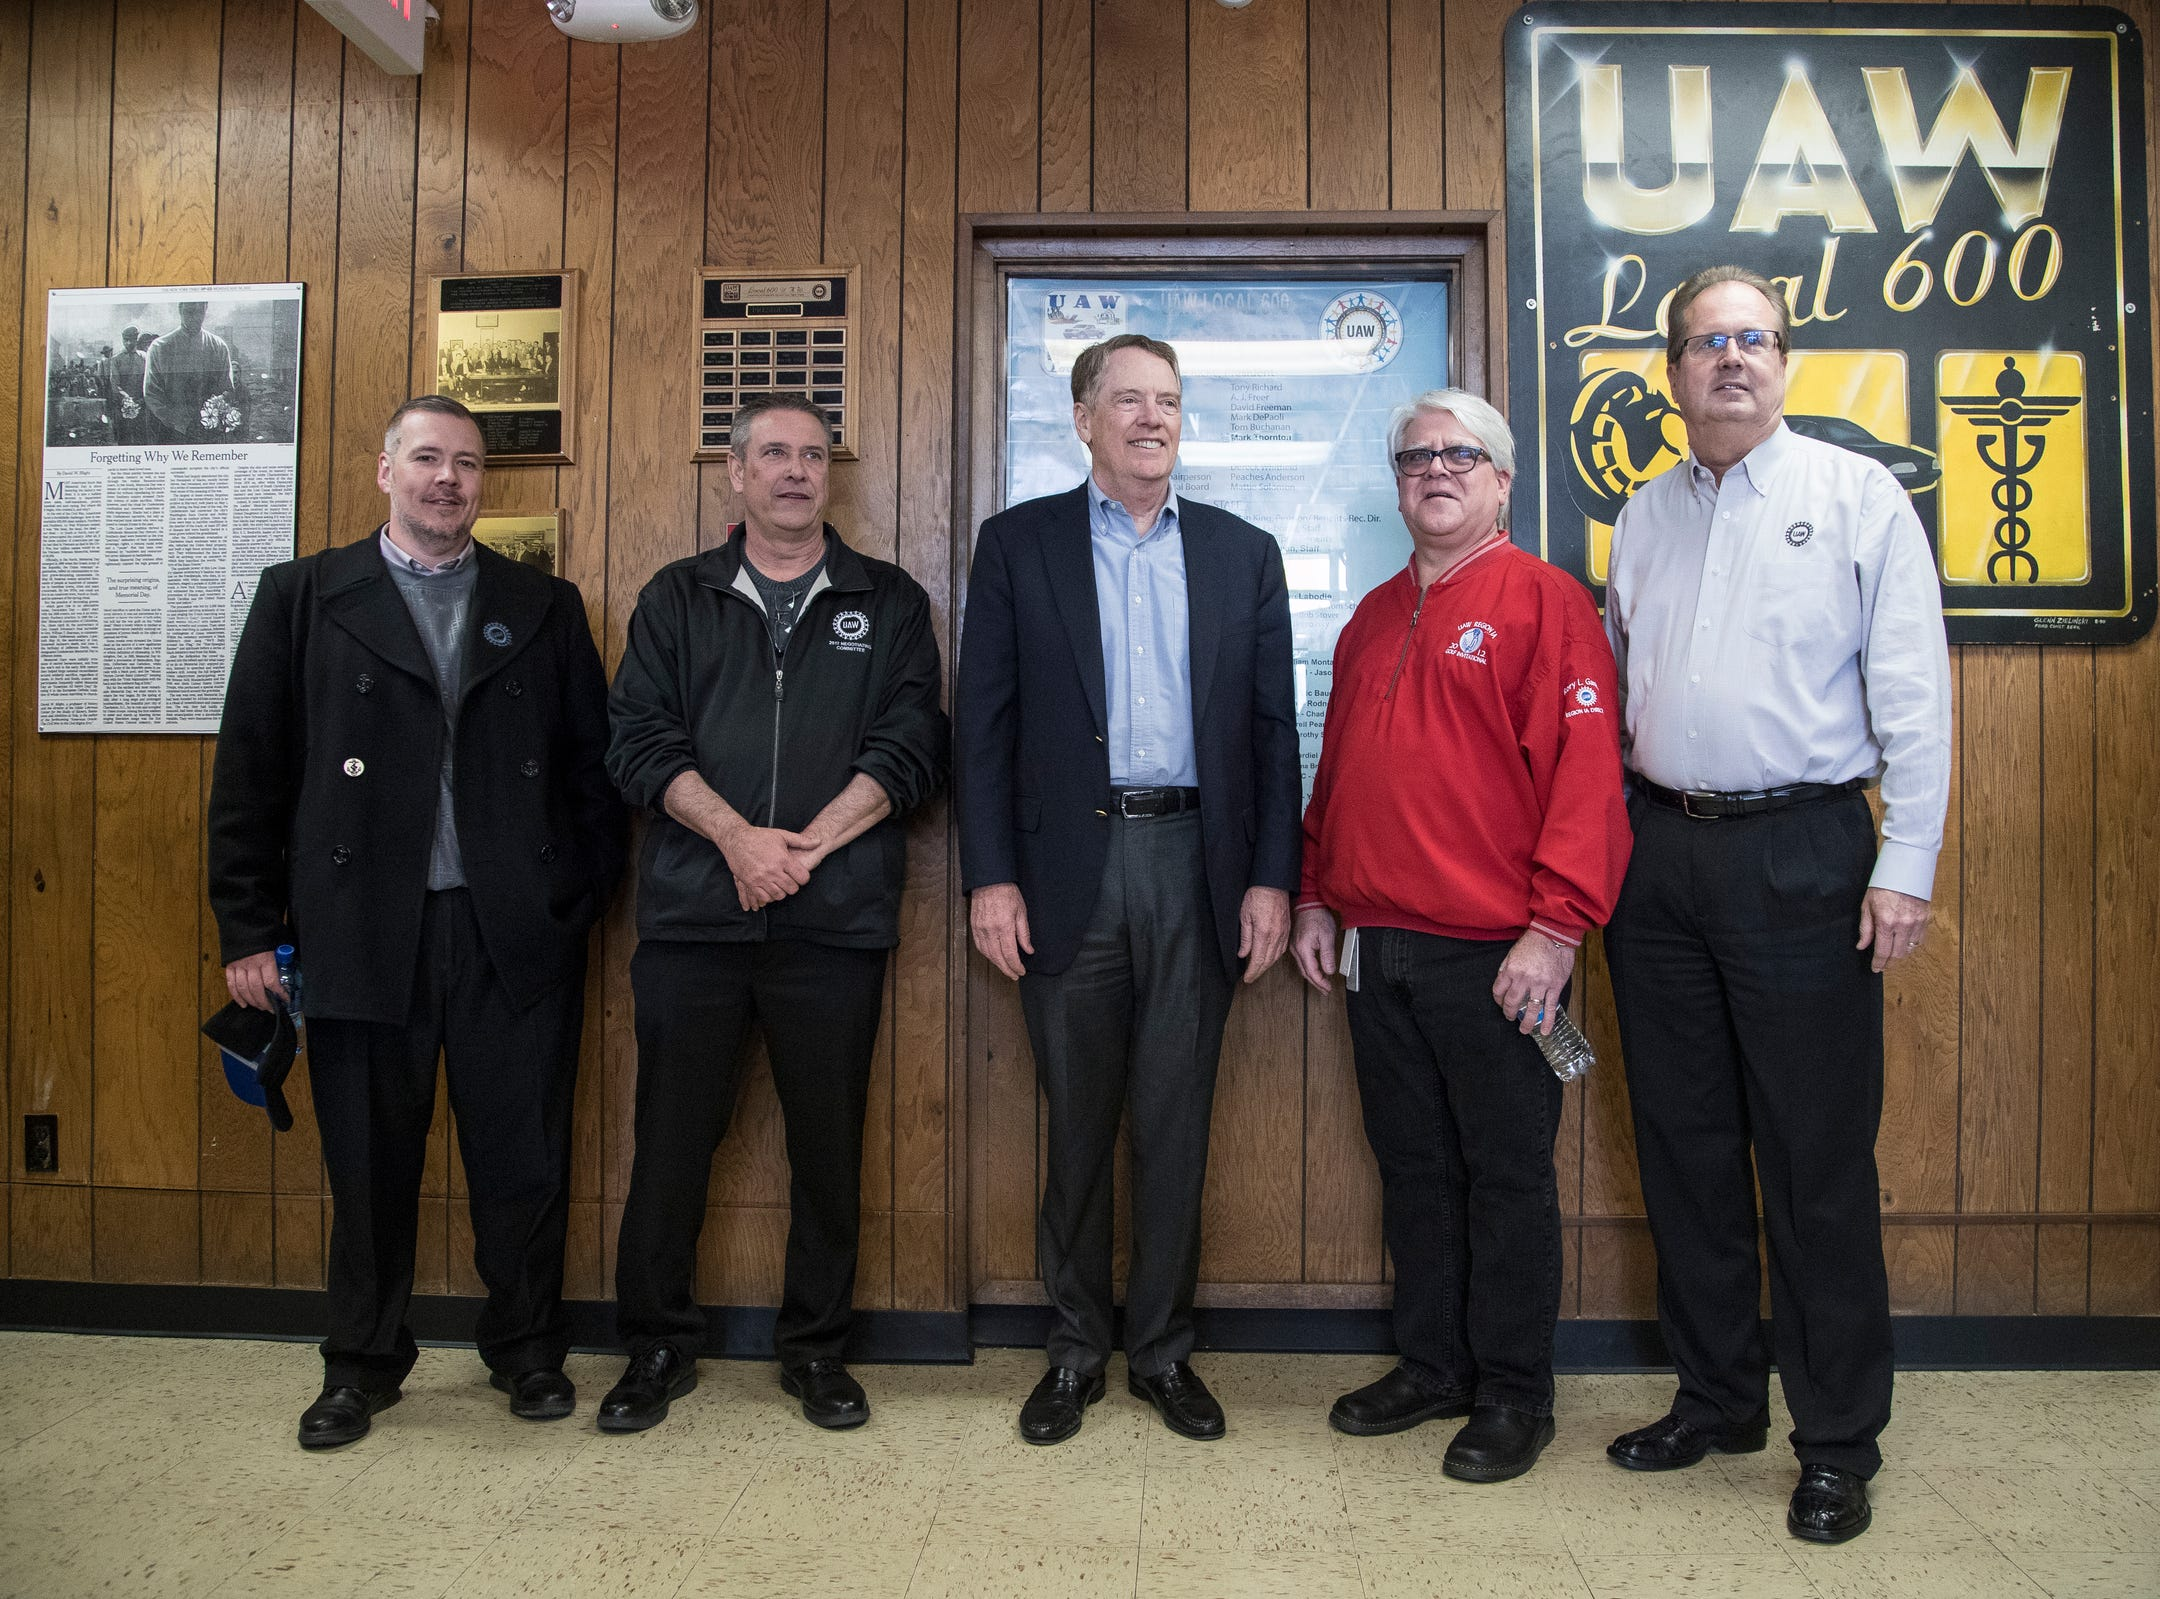 From left, Frank Stuglin, Region 1 director, Rich Ranking, Region 2b director, Chuck Browning, Region 1A director, Robert Lighthizer, United States trade representative, Bernie Ricke, UAW local 600 president, Gary Jones, UAW president, before the meeting at UAW Local 600 in Dearborn, Tuesday, March 5, 2019.